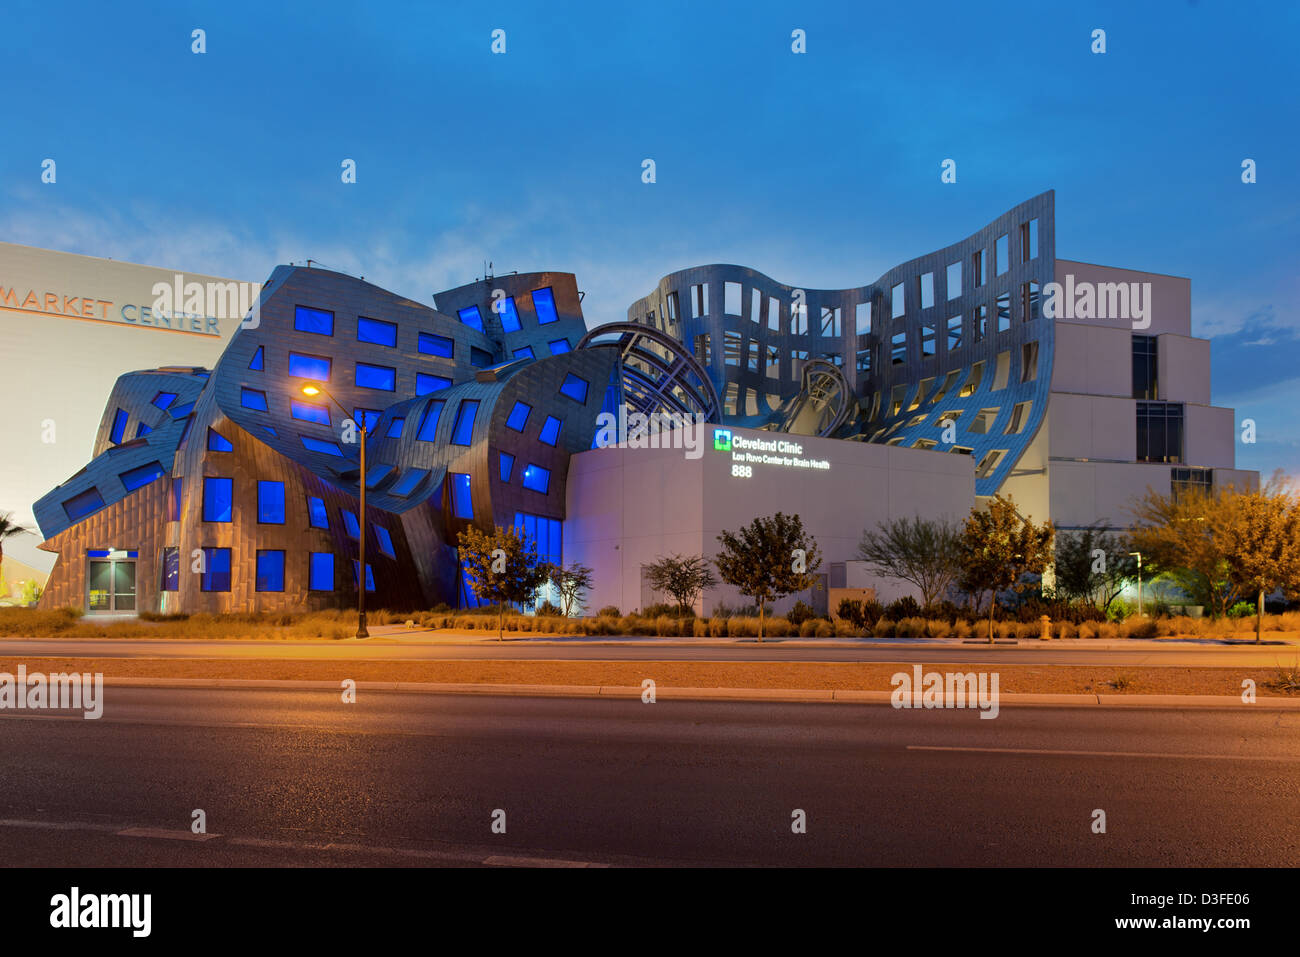 Frank Gehry's Cleveland Clinic Lou Ruvo Center for Brain Health, Las Vegas, Nevada, USA - Stock Image